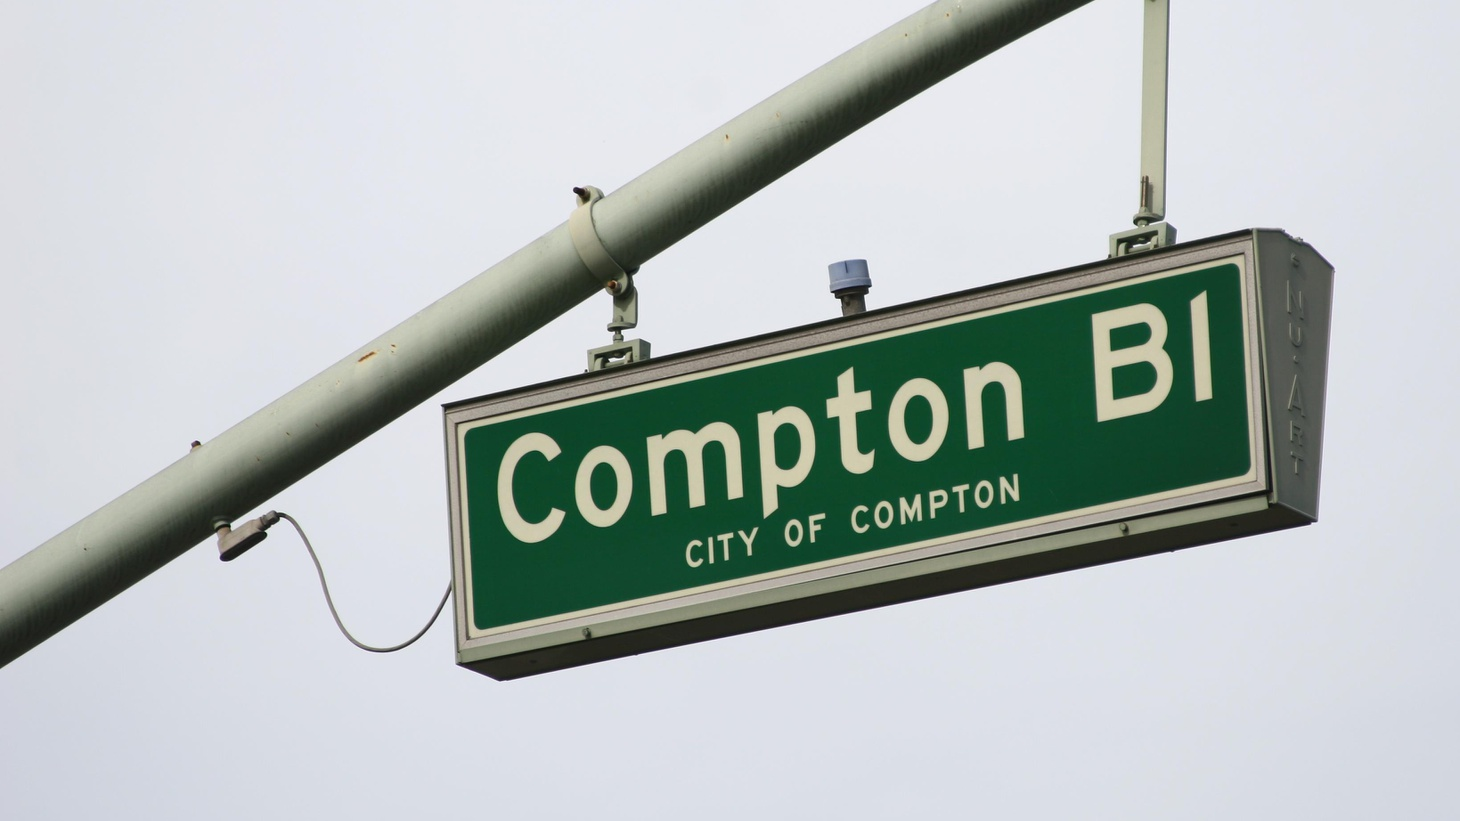 The Compton City Council is behaving a lot like the city council in Bell, with pay for meetings that hardly happen and a $3.5 million loan with no payments for 7 years.